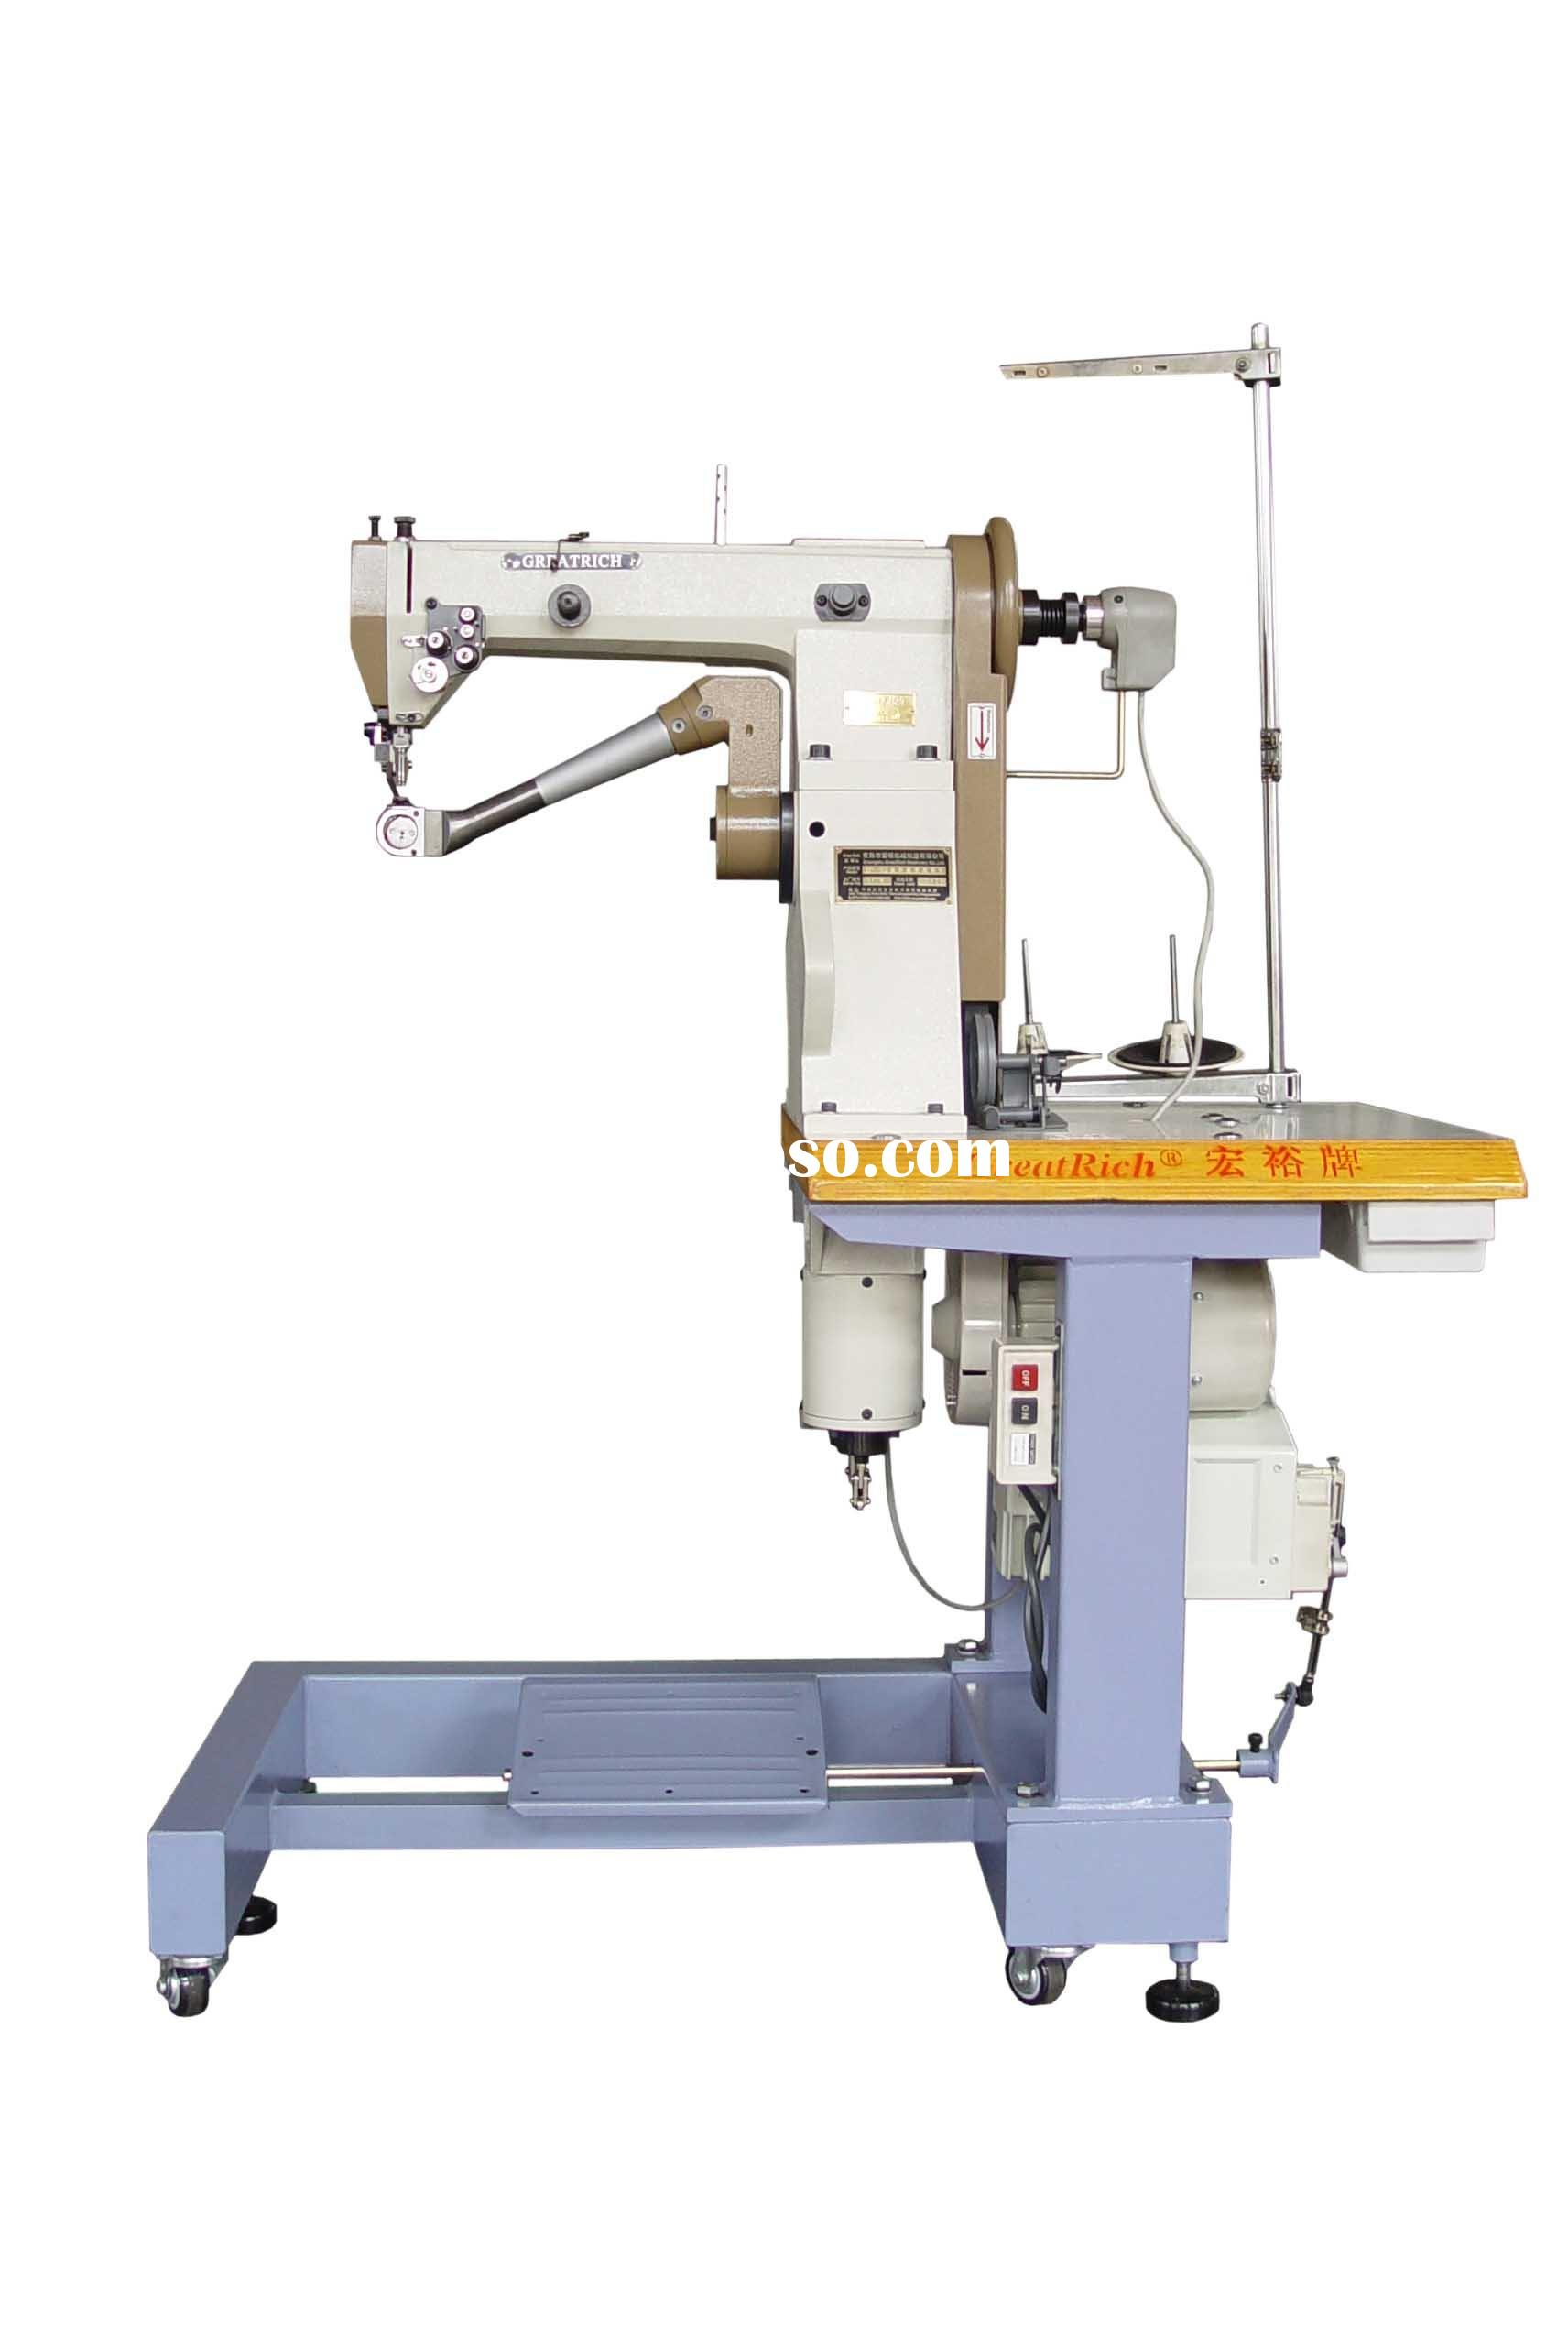 GR-182 double needle seated type inseam sewing machine